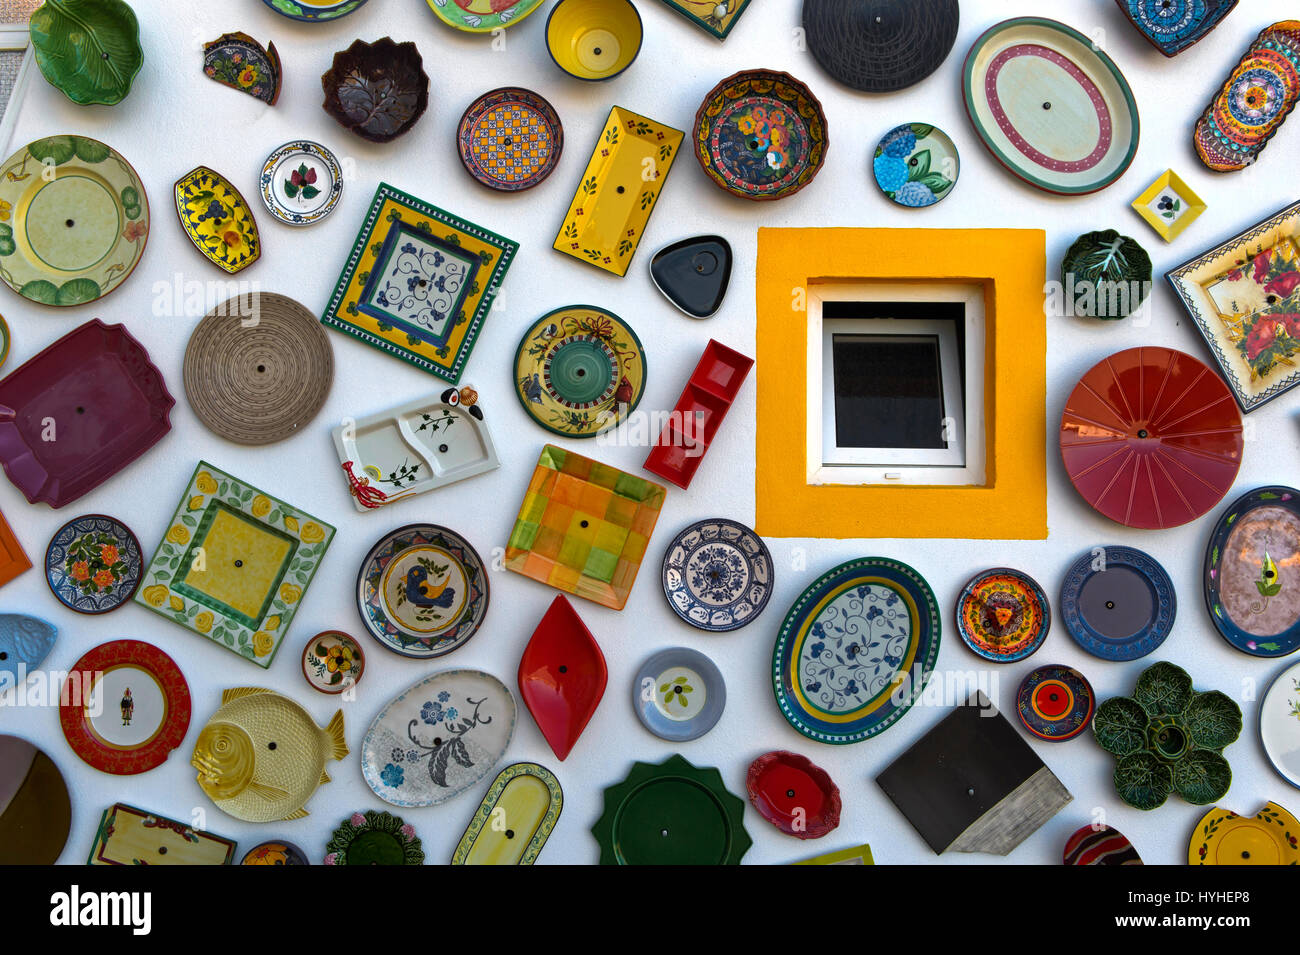 Hand-painted traditional Portuguese pottery at the wall of the pottery shop Artesanato A Mo, Sagres, Algarve, Portugal - Stock Image